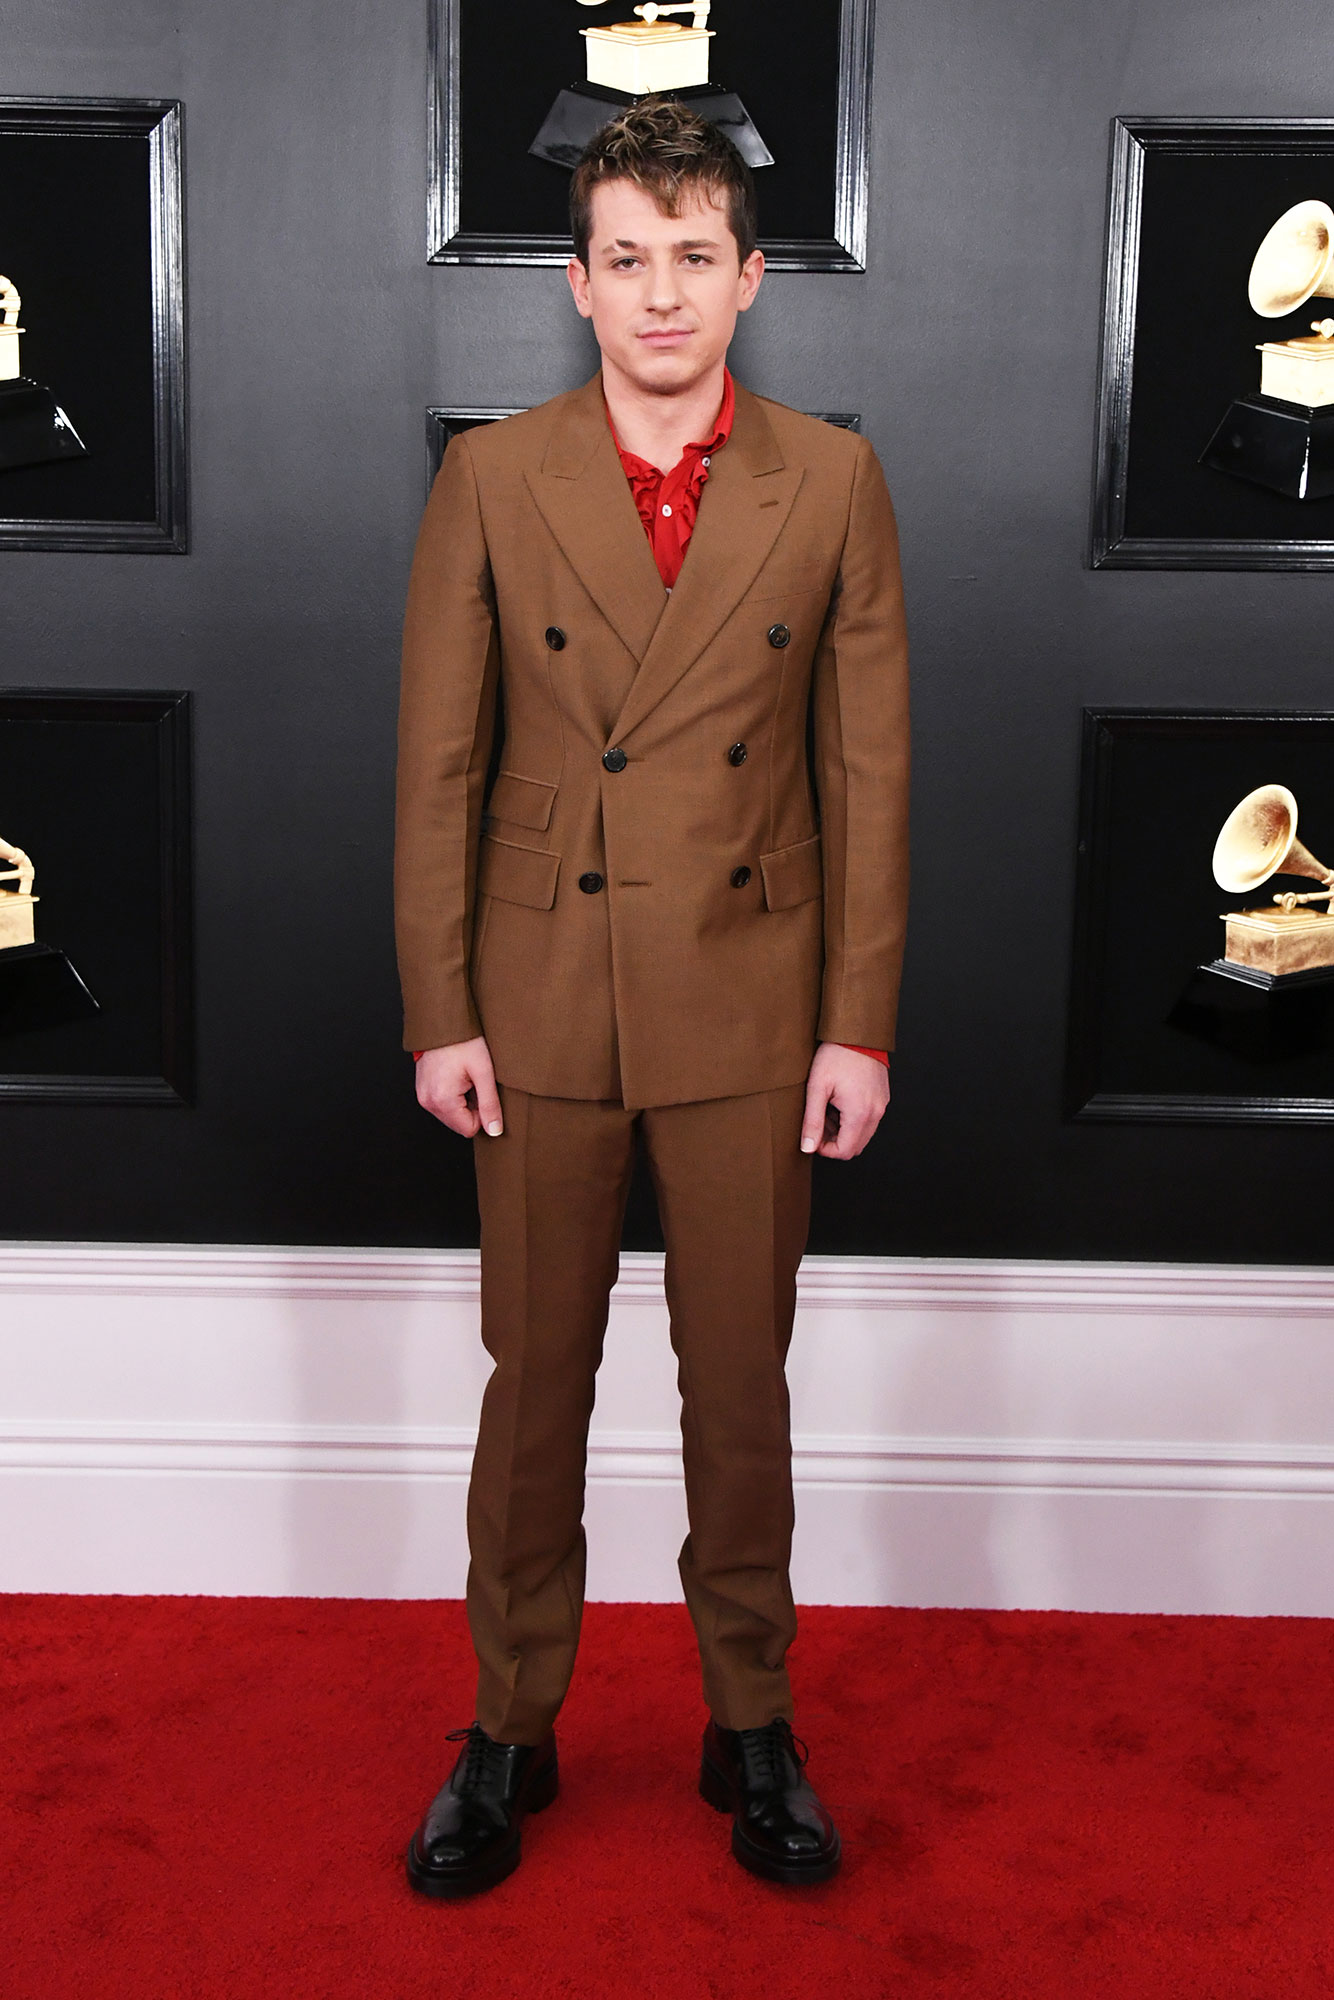 grammys 2019 Charlie Puth - We were getting '70s vibes from the musician's double-breasted brown Prada suit that he paired with a red shirt.